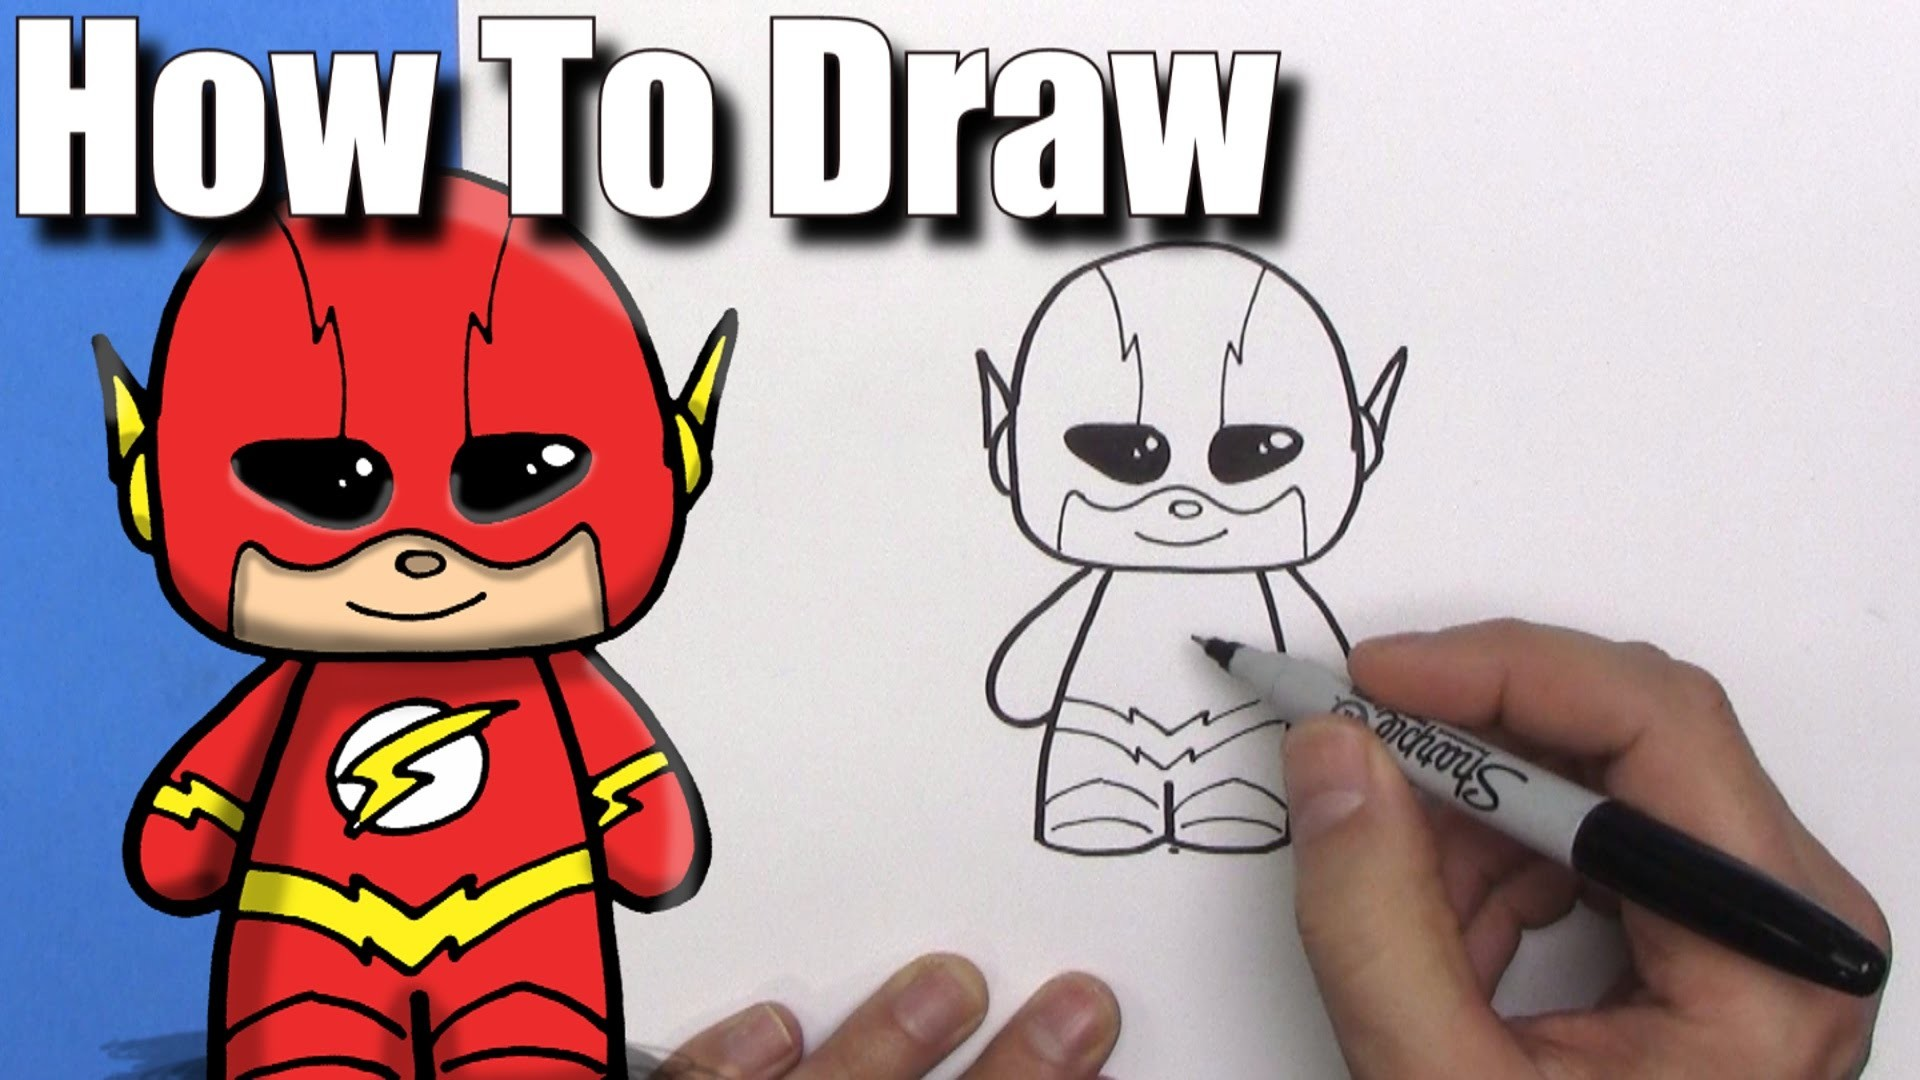 How To Draw a Cute Cartoon The Flash – EASY Chibi – Step By Step – Kawaii –  YouTube